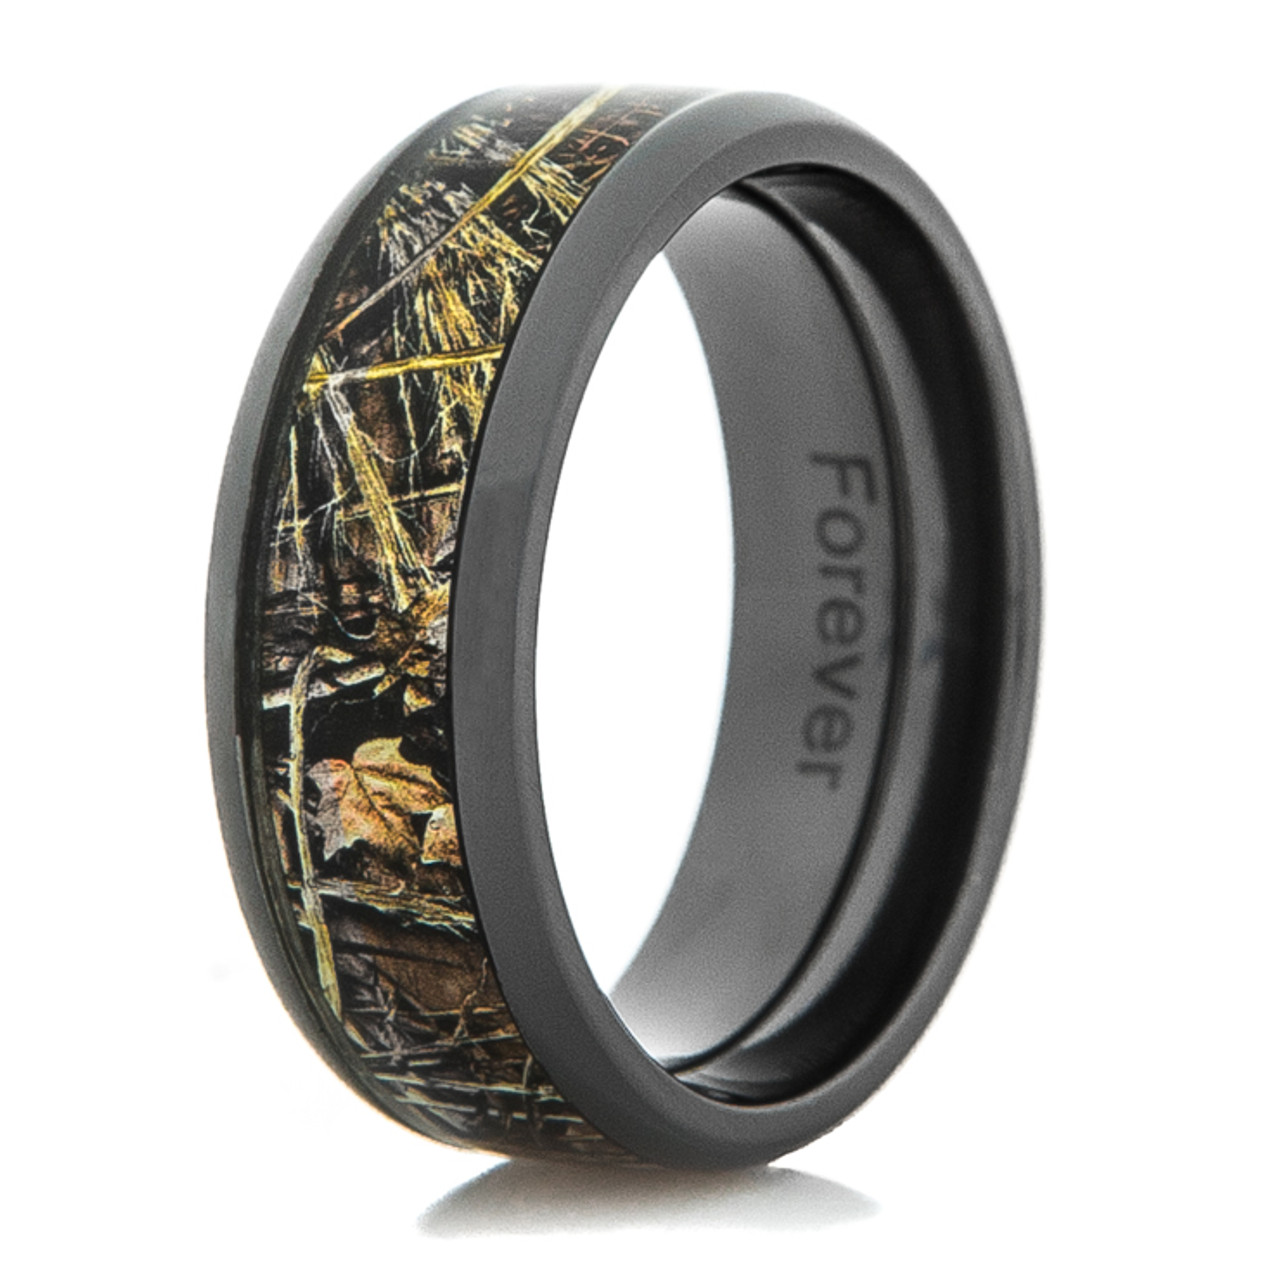 Menu0027s Black Zirconium Realtree® Max 4 Camo Ring